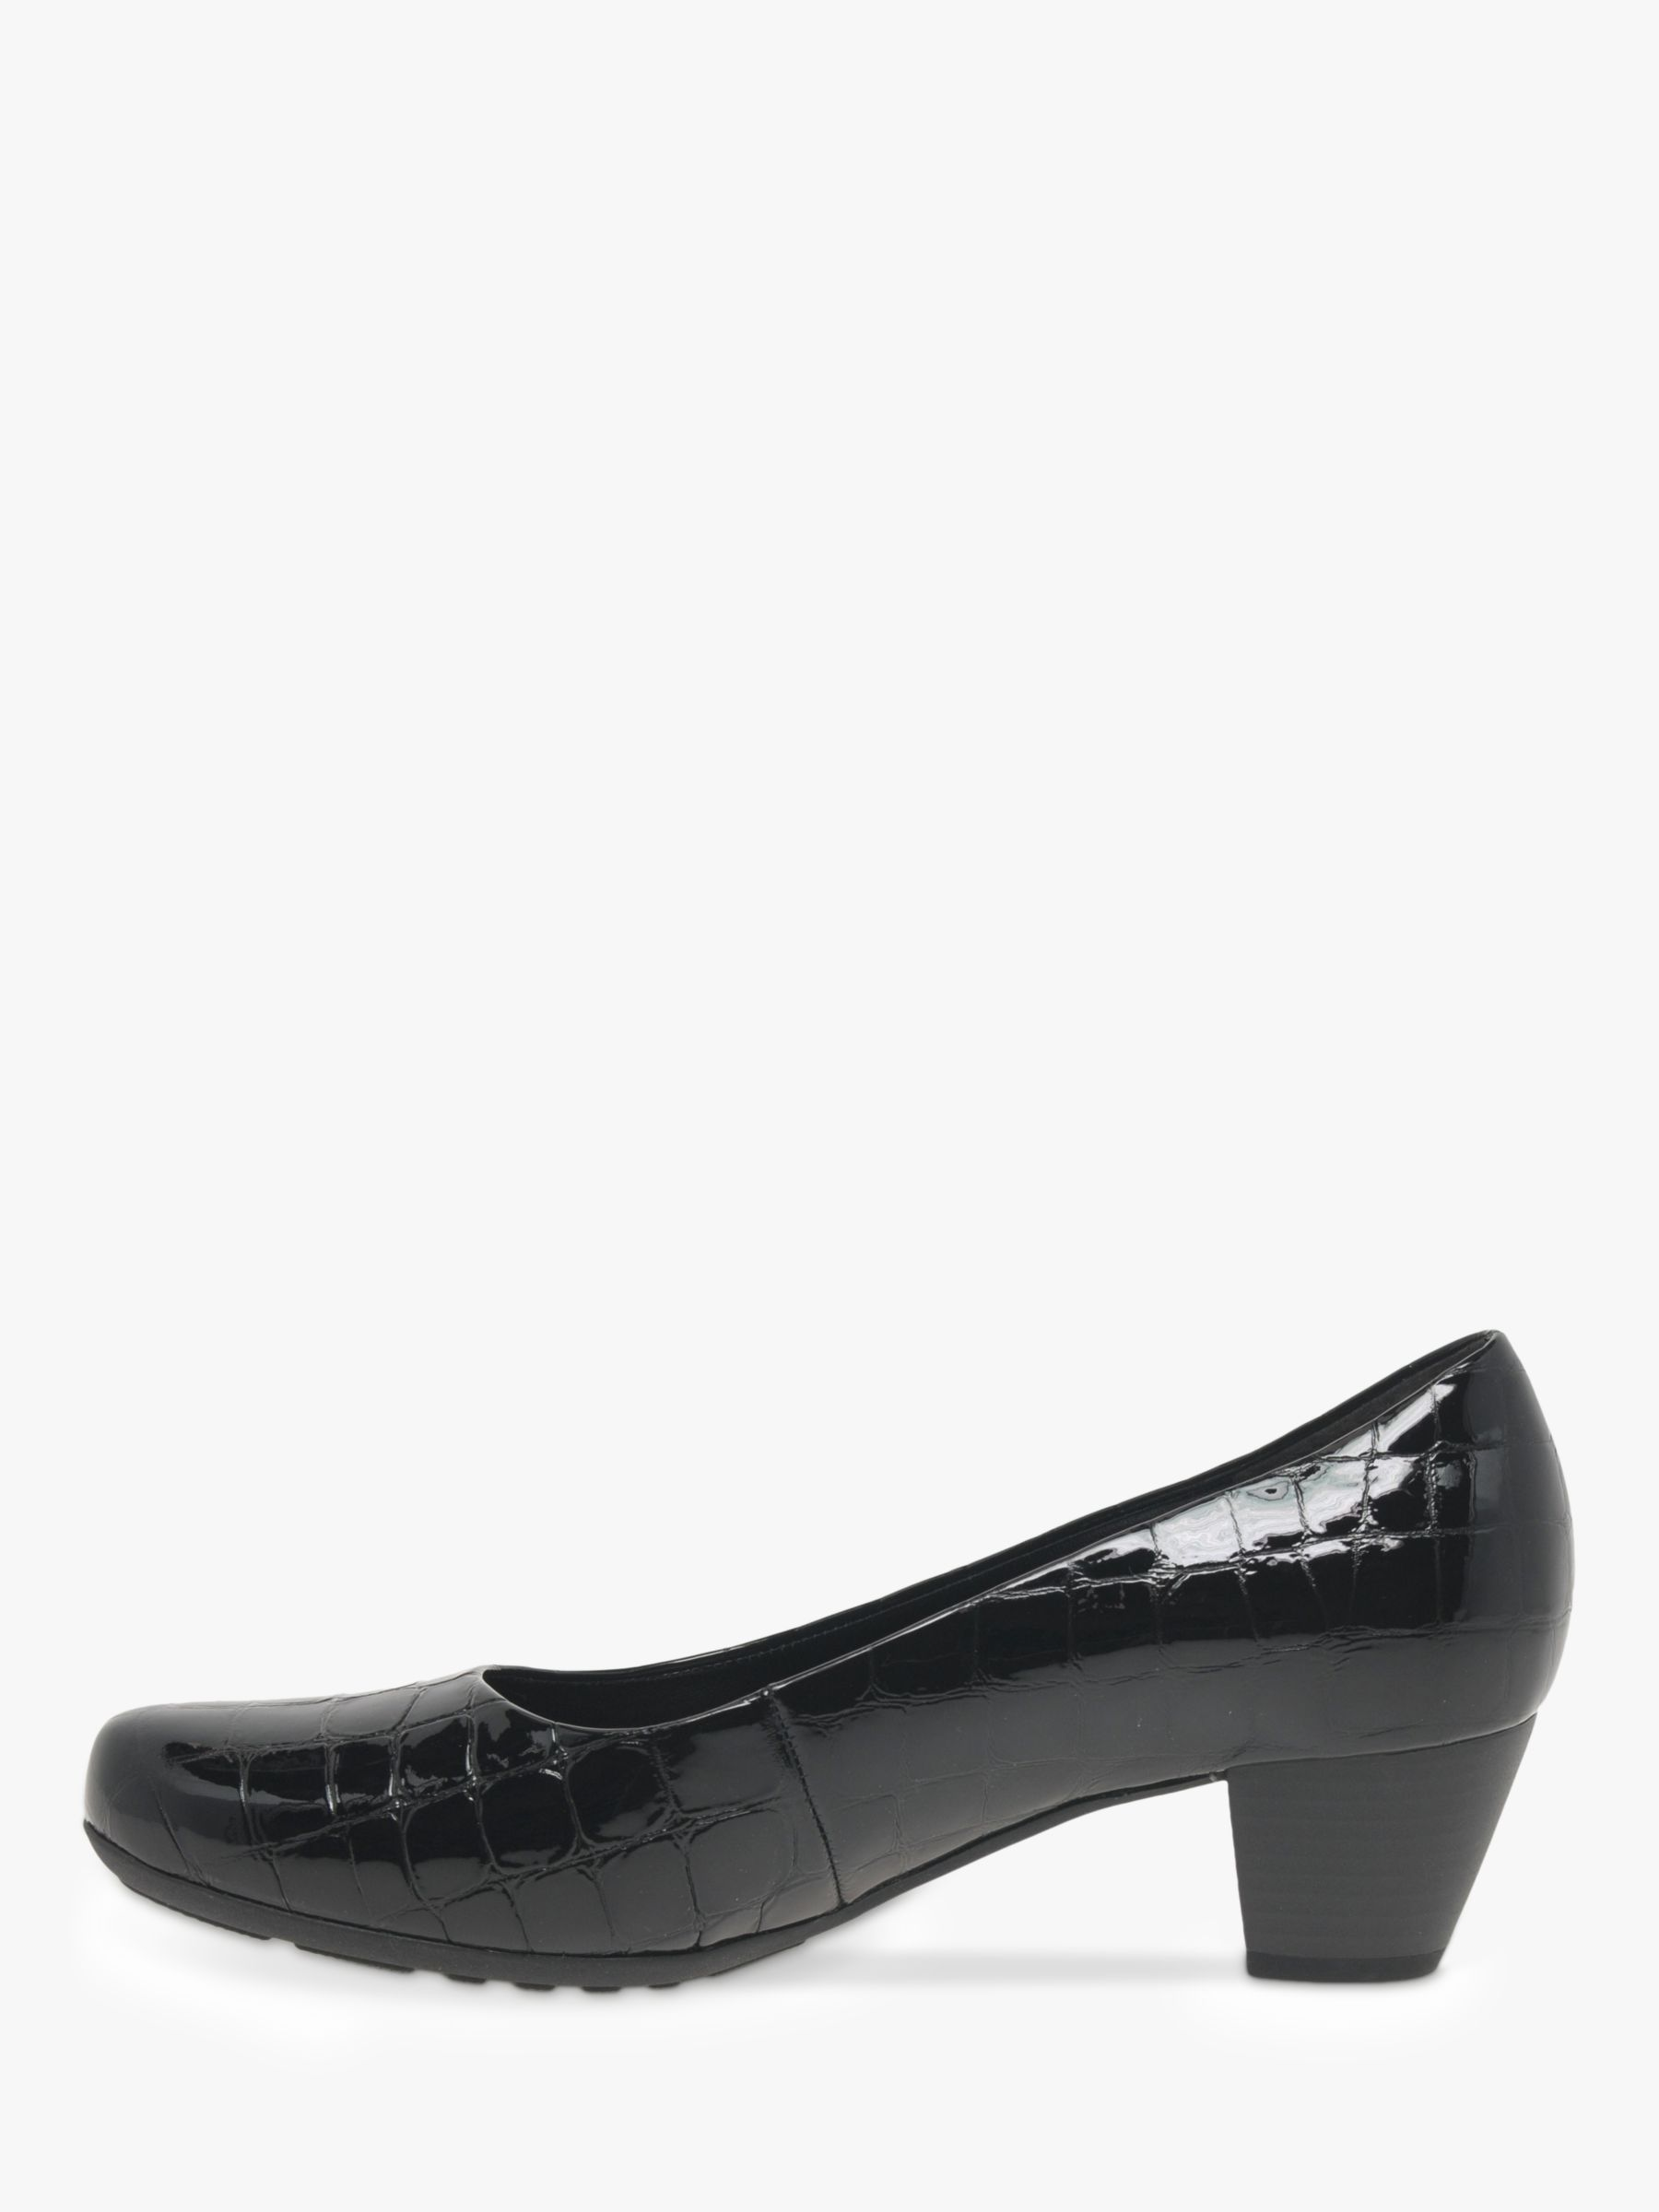 Gabor Brambling Patent Leather Wide Fit